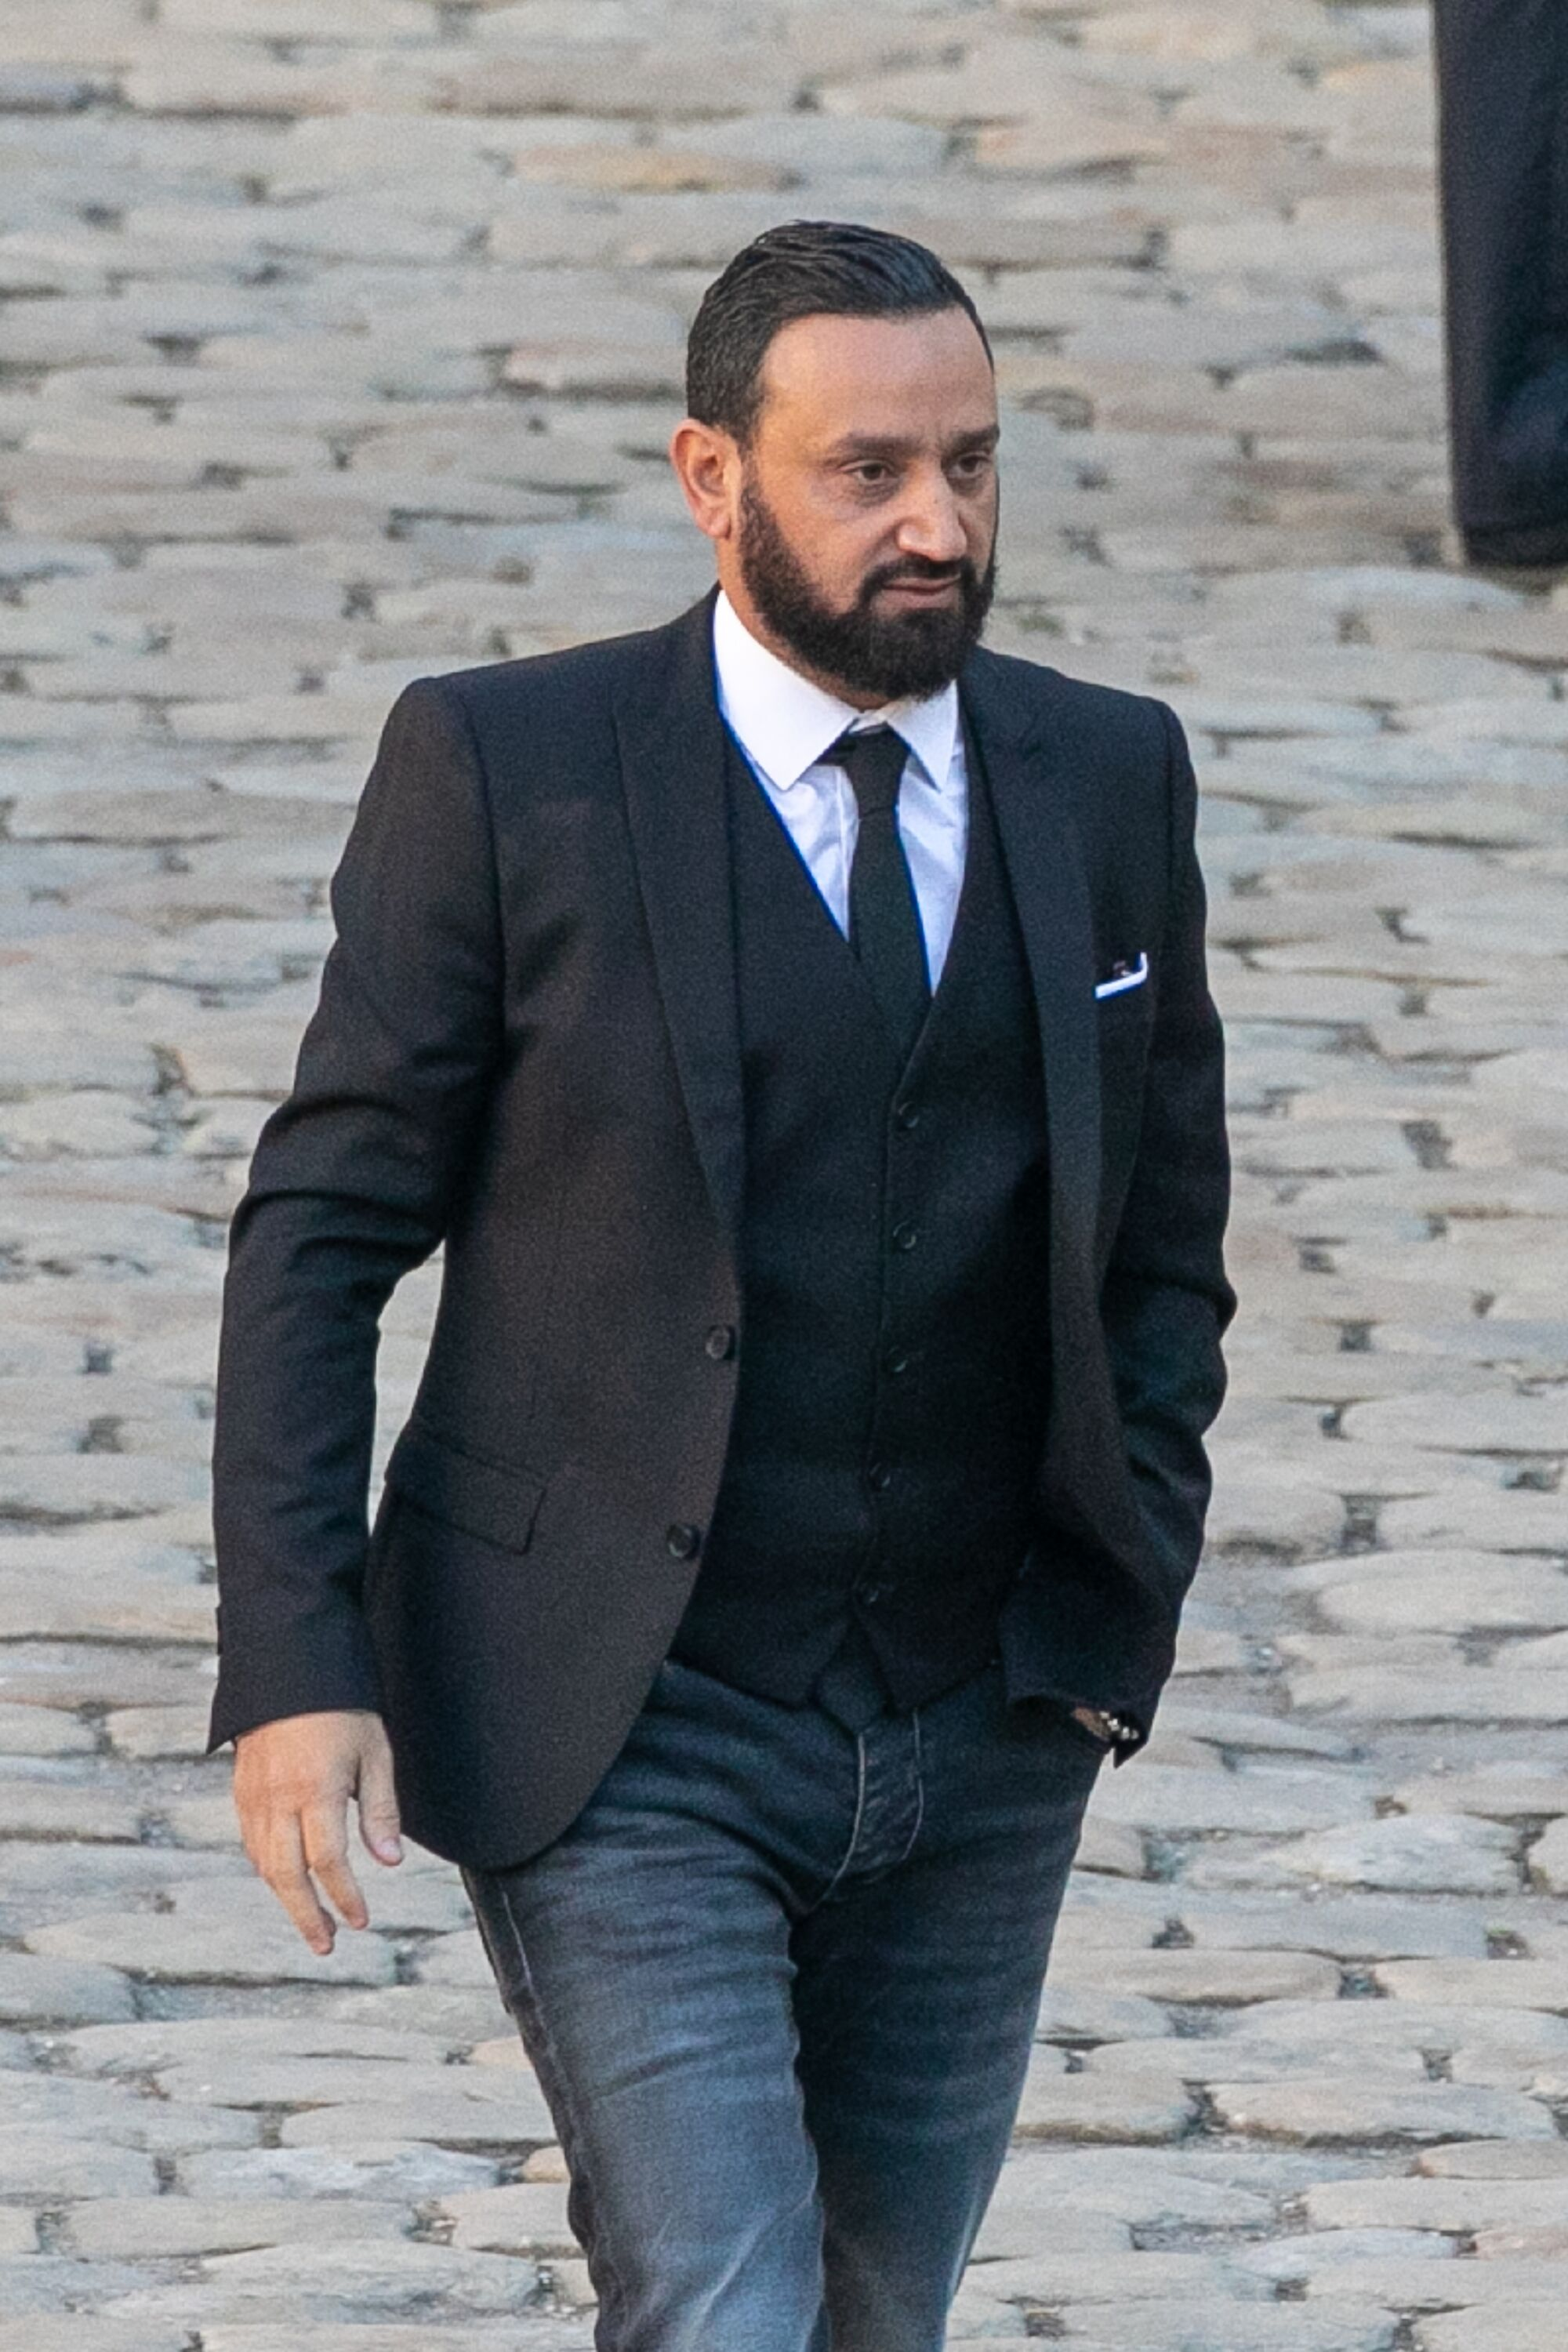 Cyril Hanouna assiste à l'hommage national à Charles Aznavour aux Invalides le 5 octobre 2018 à Paris, France. | Photo : Getty